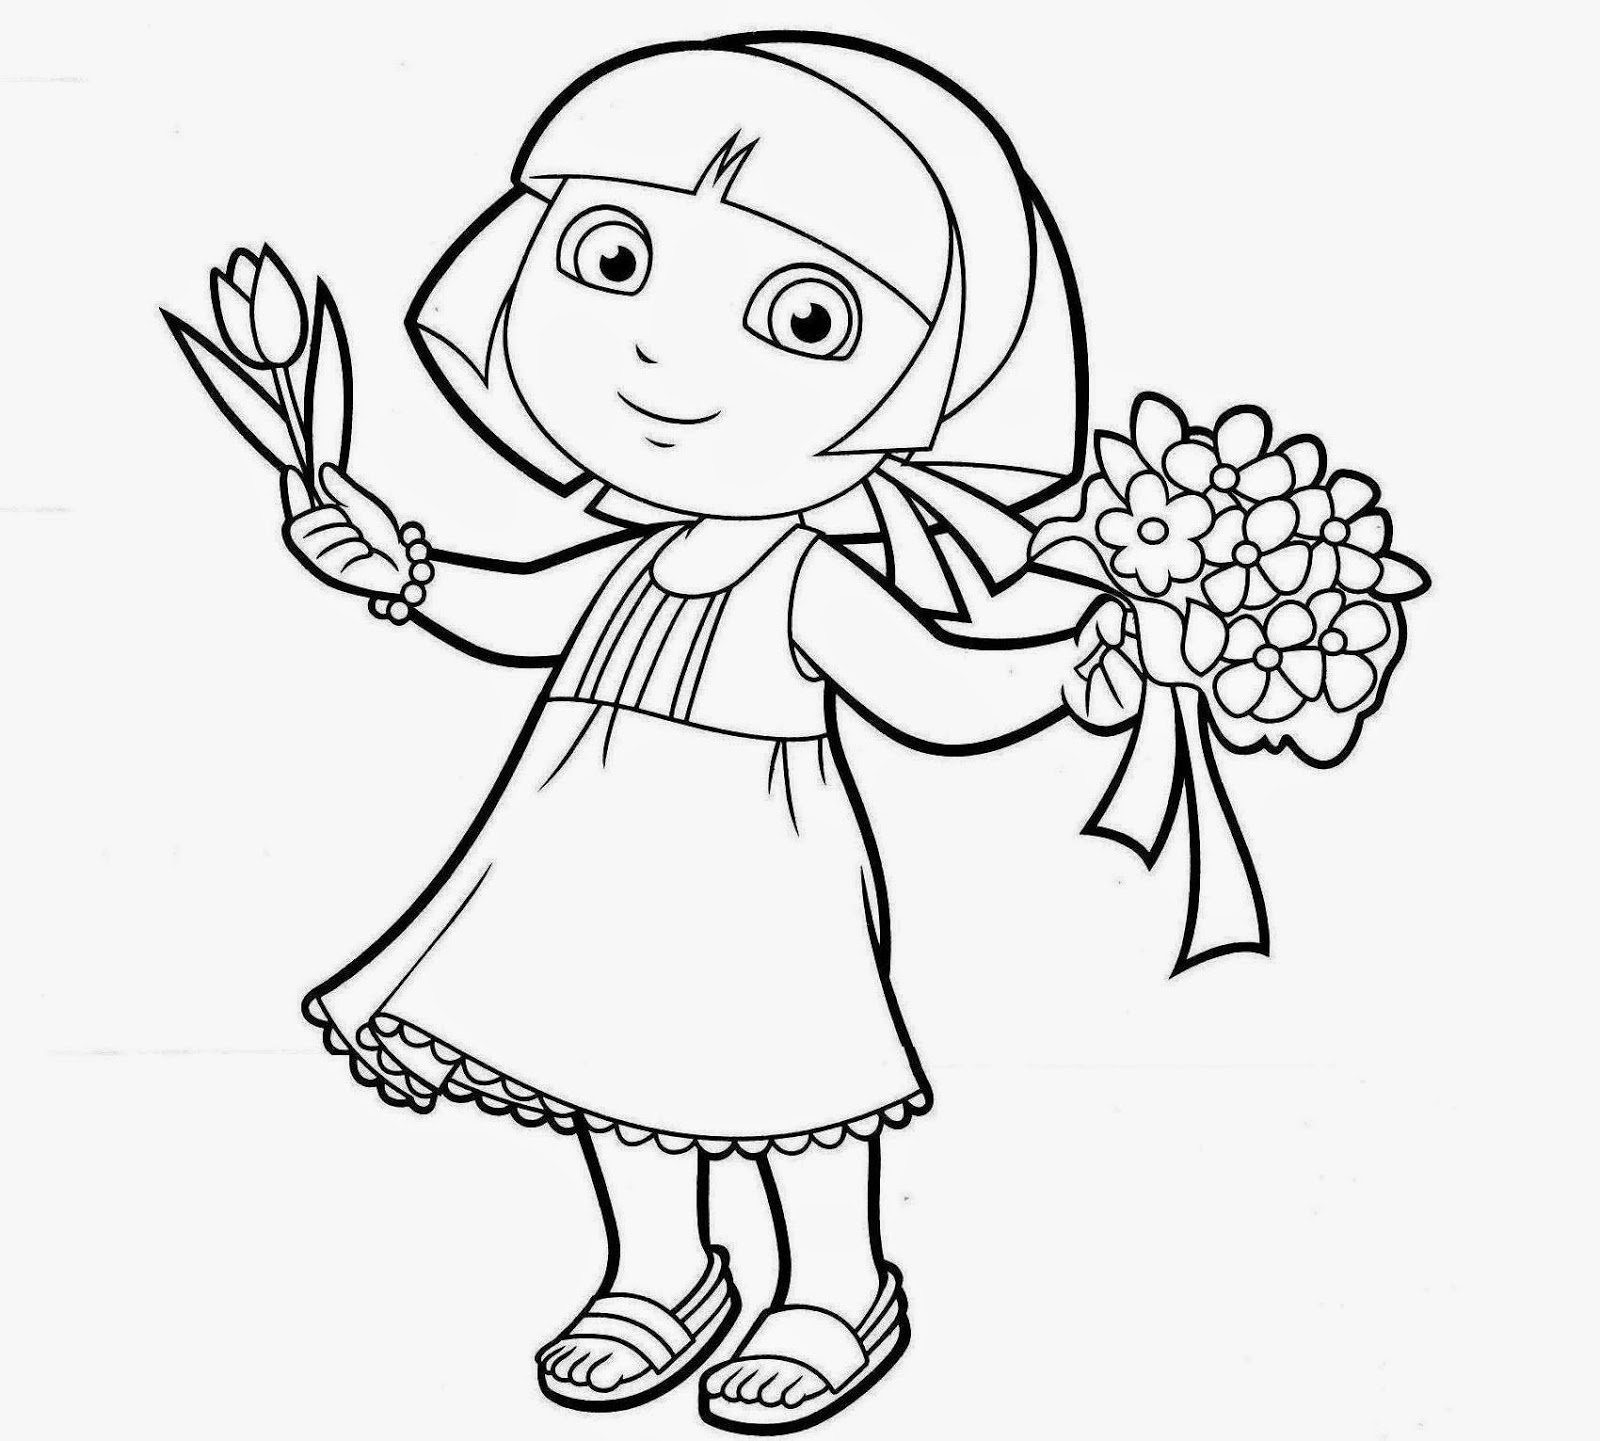 dora sketch for coloring dora drawing pictures at getdrawings free download sketch dora for coloring